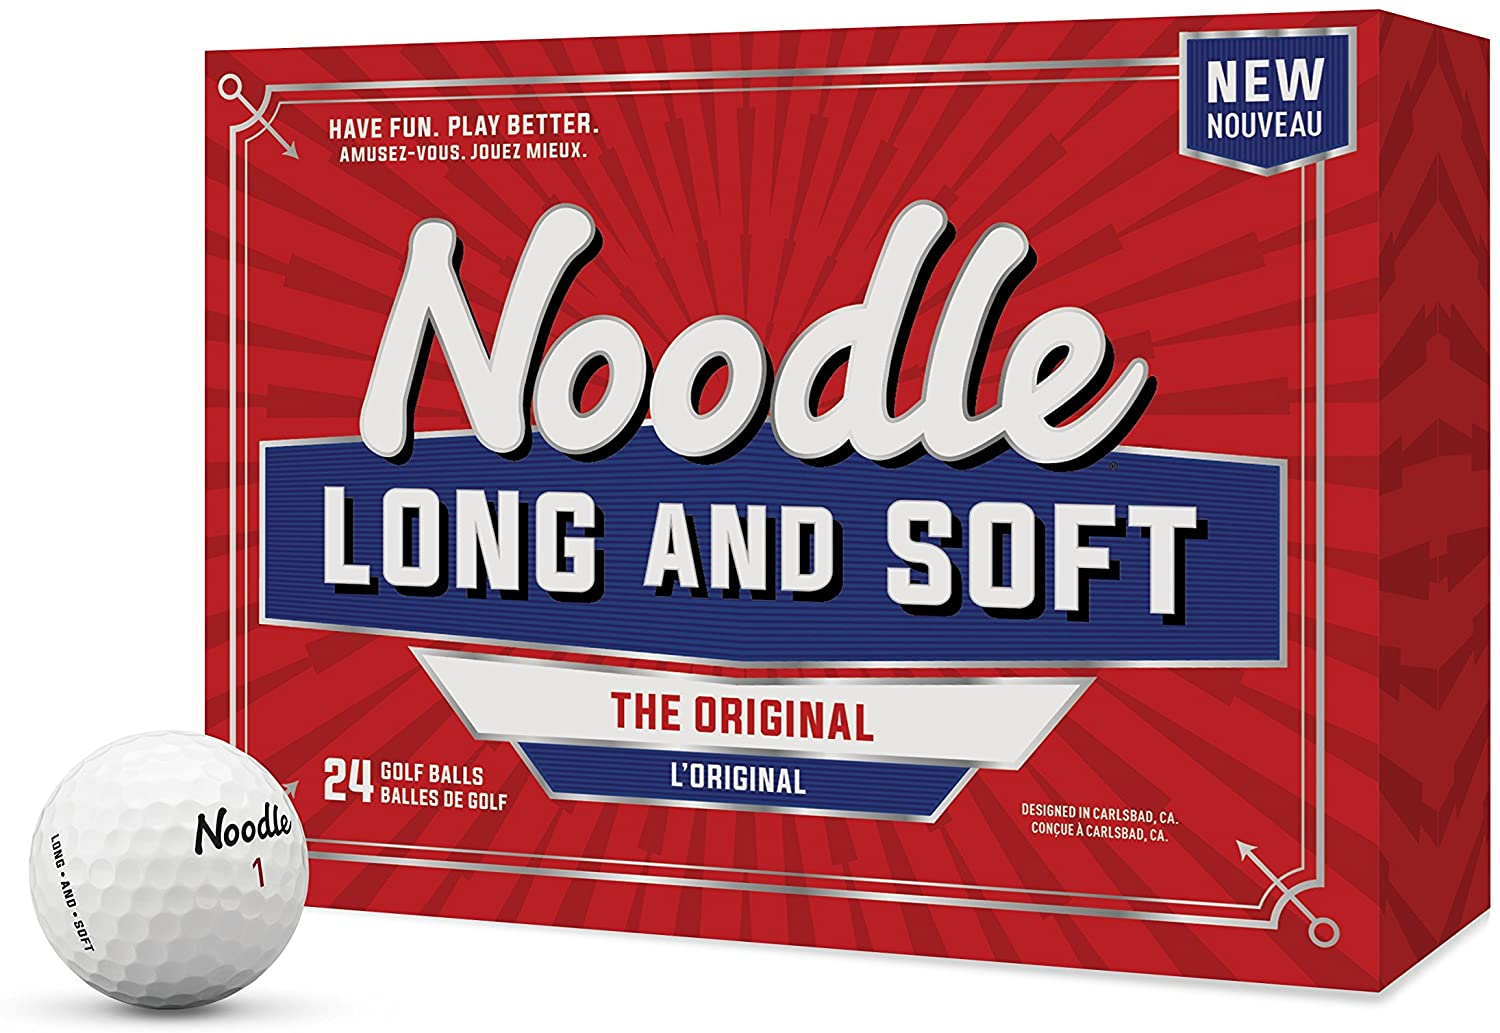 noodle review long and soft